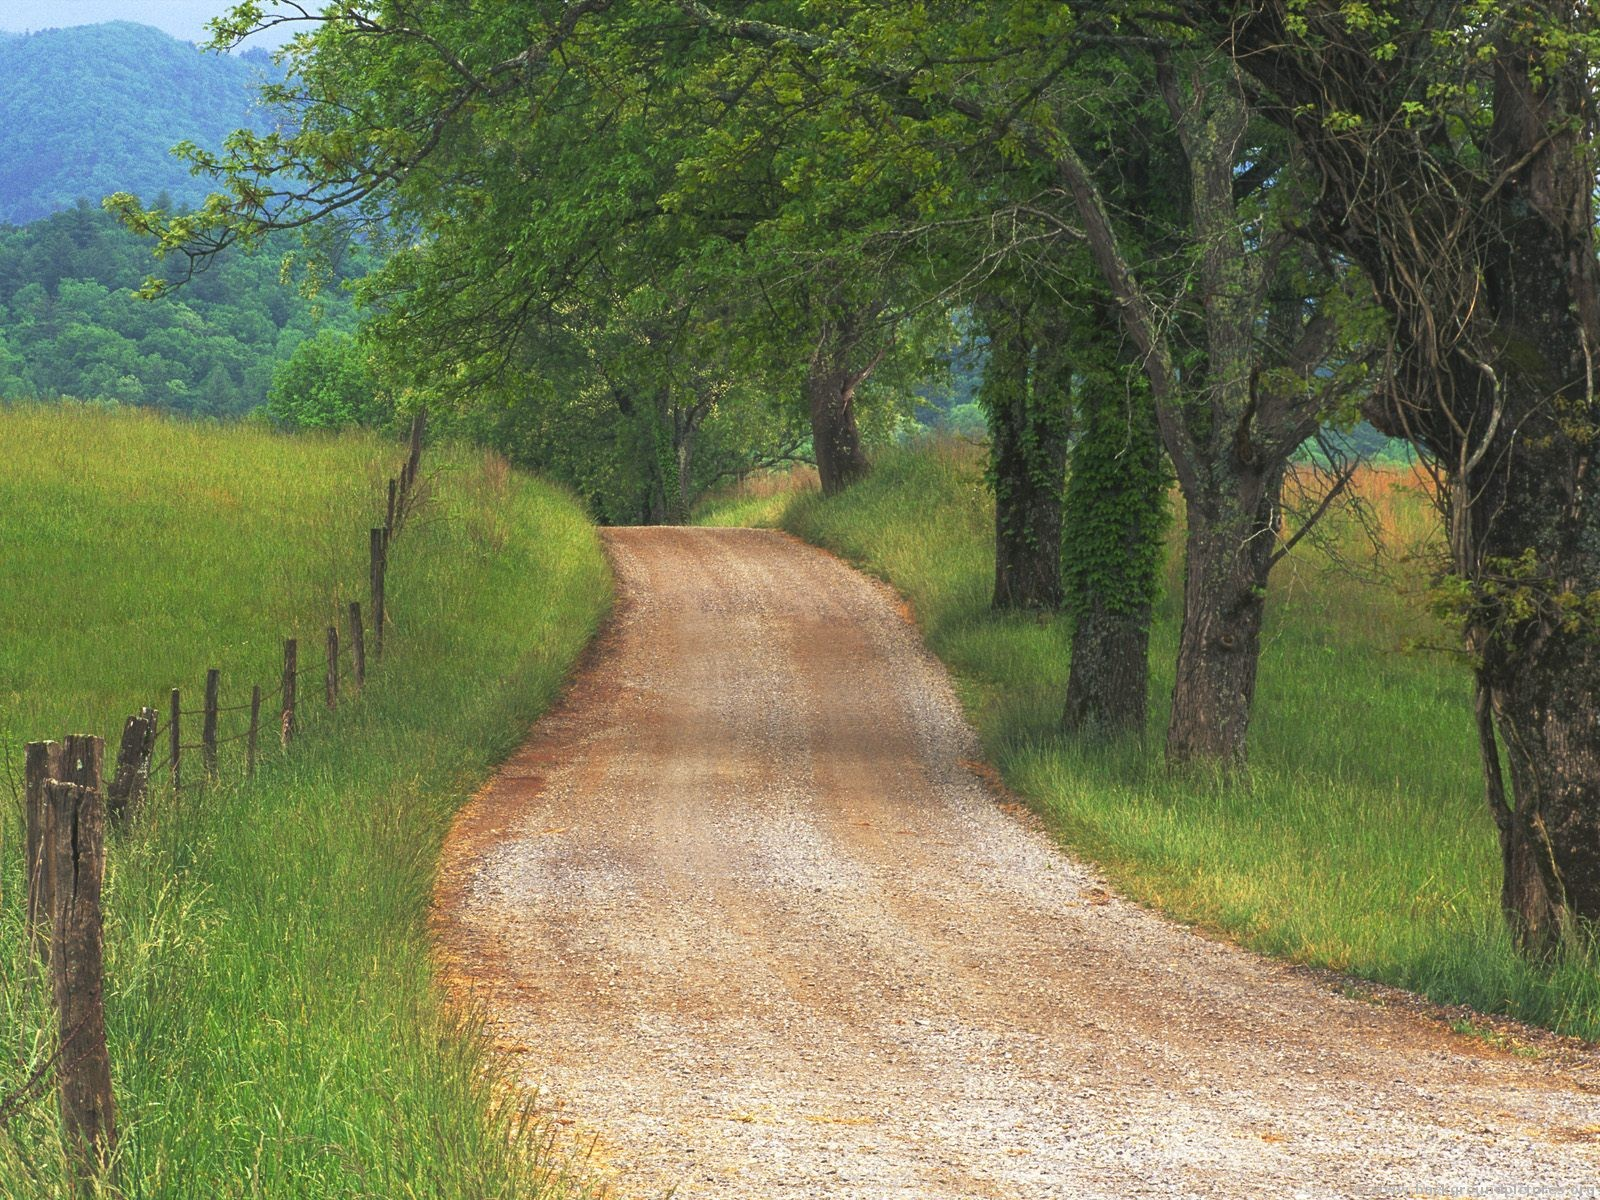 http://conqueringkingdoms.files.wordpress.com/2013/01/country_road_through_cades_cove_great_smoky_mountains_tennessee.jpg